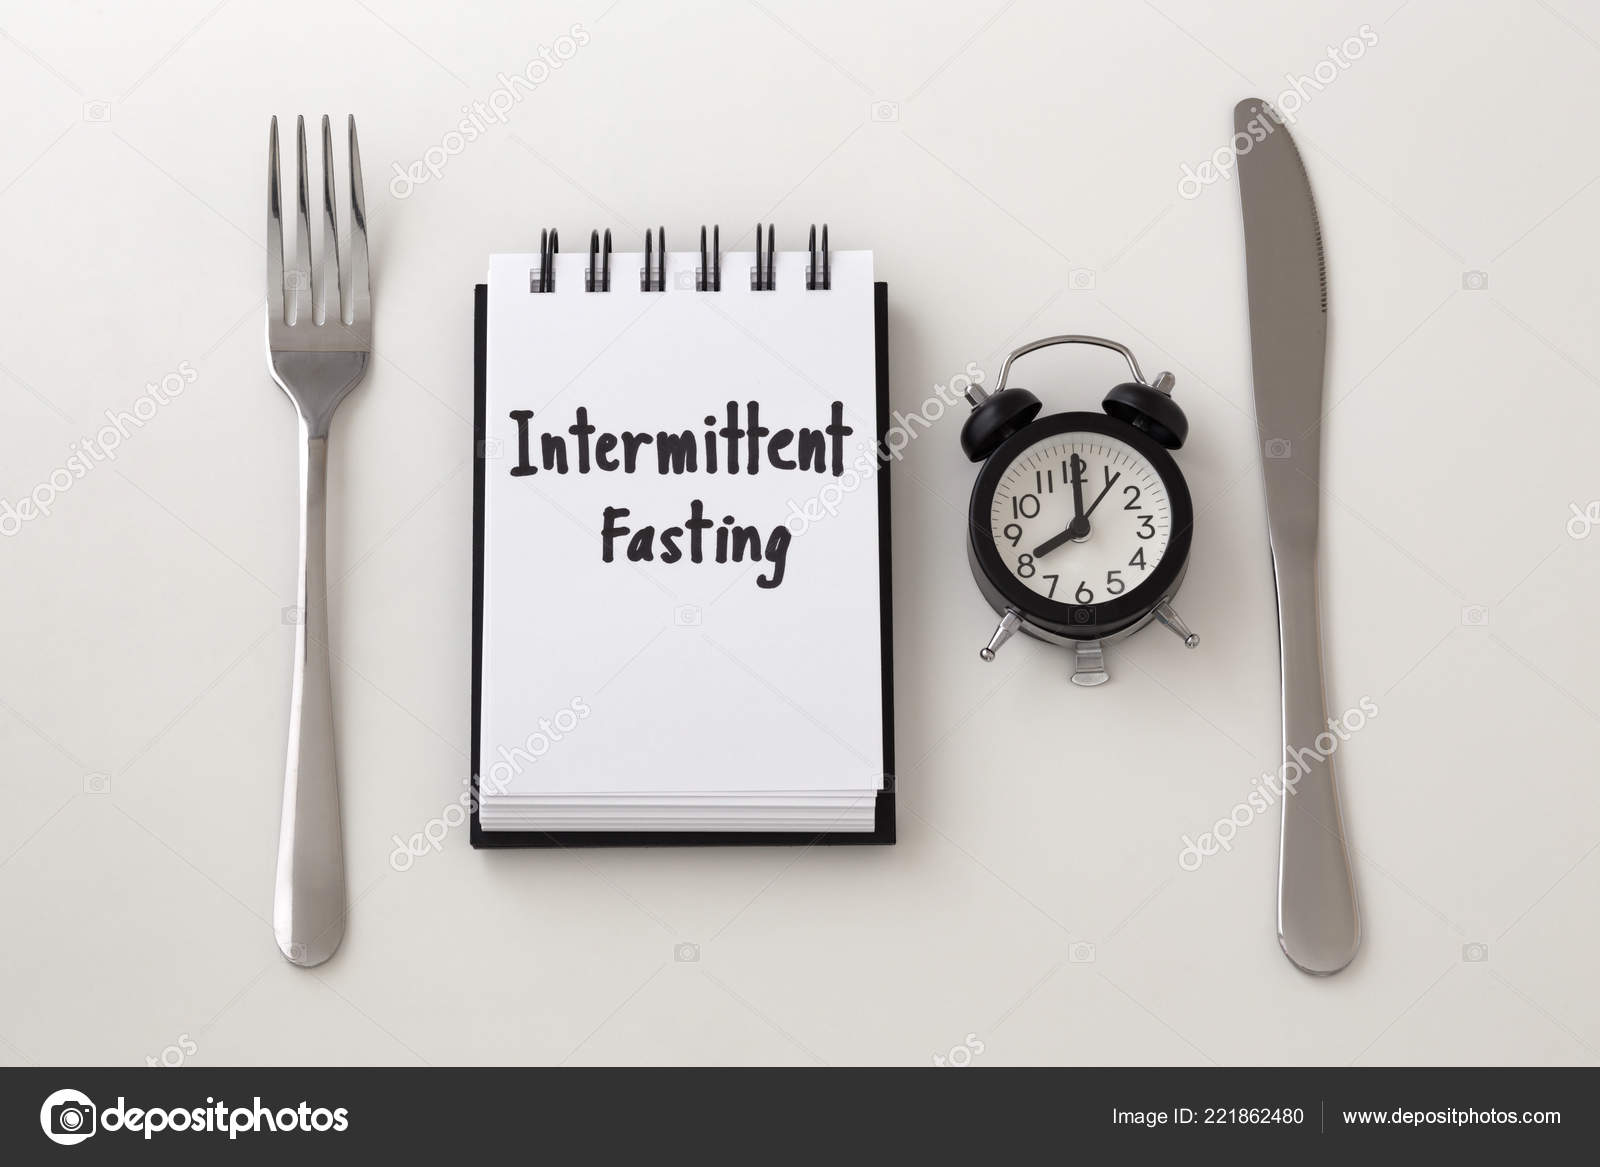 Intermittent Fasting Word Notepad Clock Fork Knife Weight